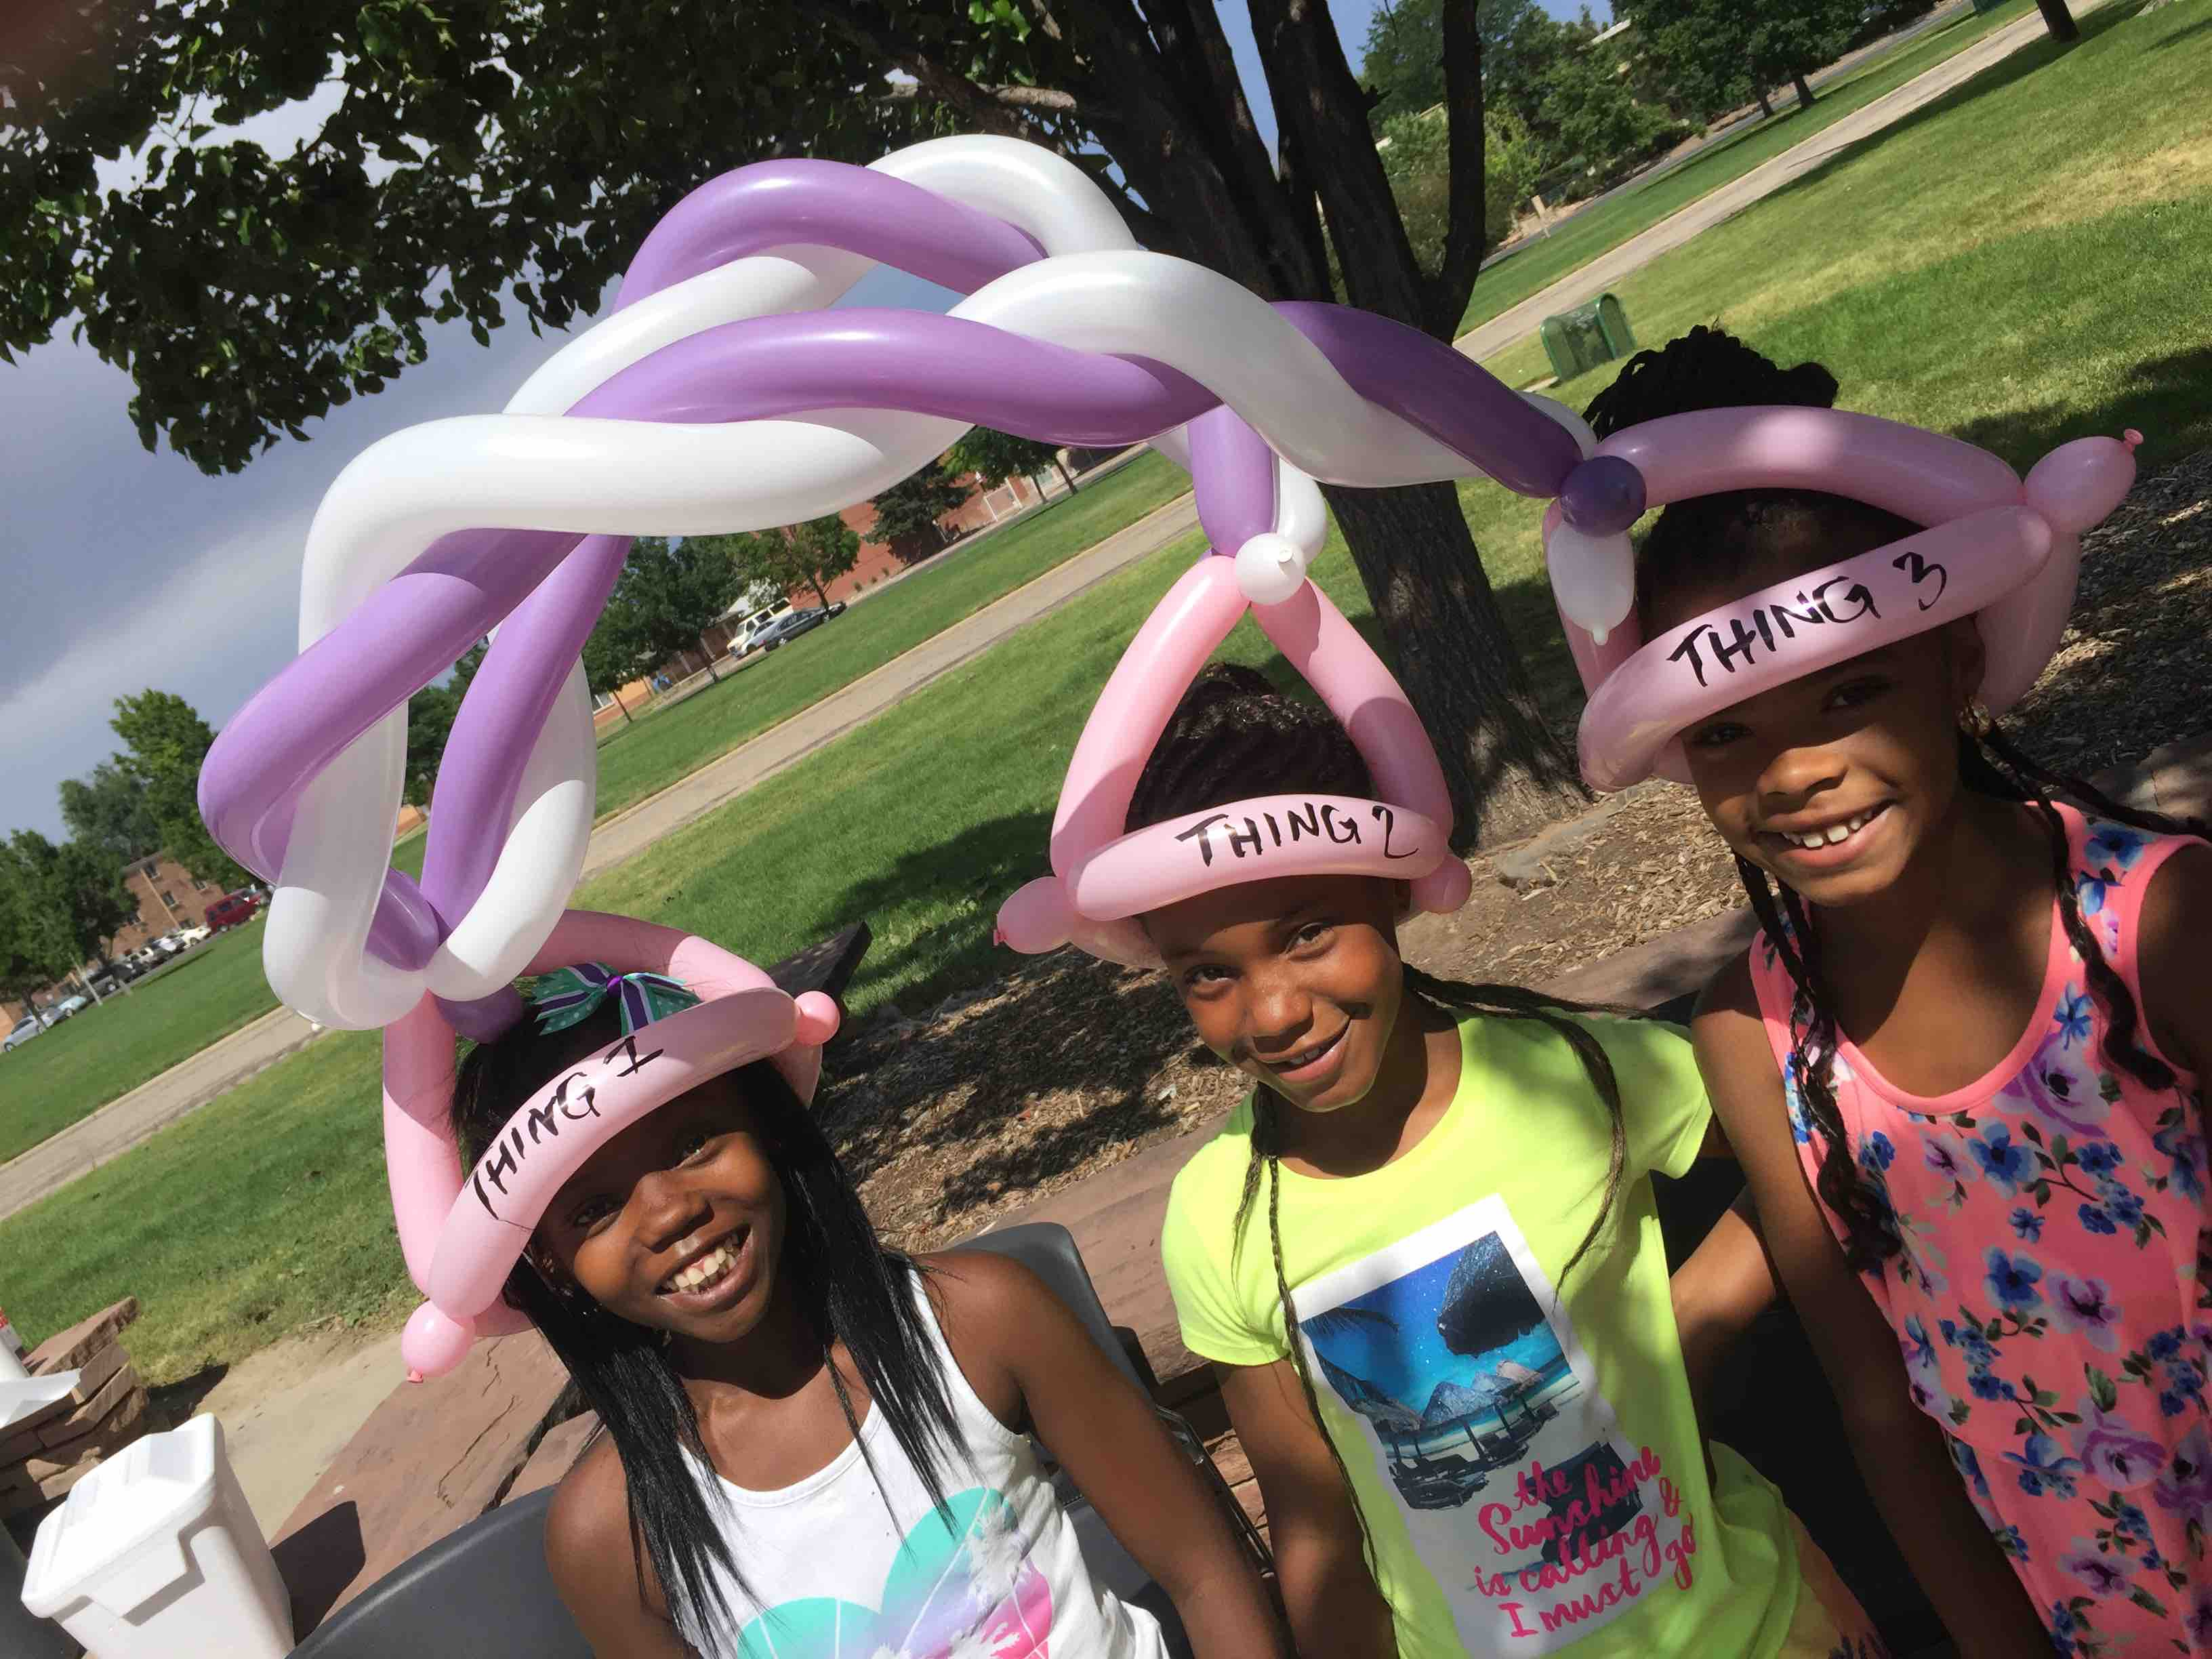 3 girls with shared balloon hat